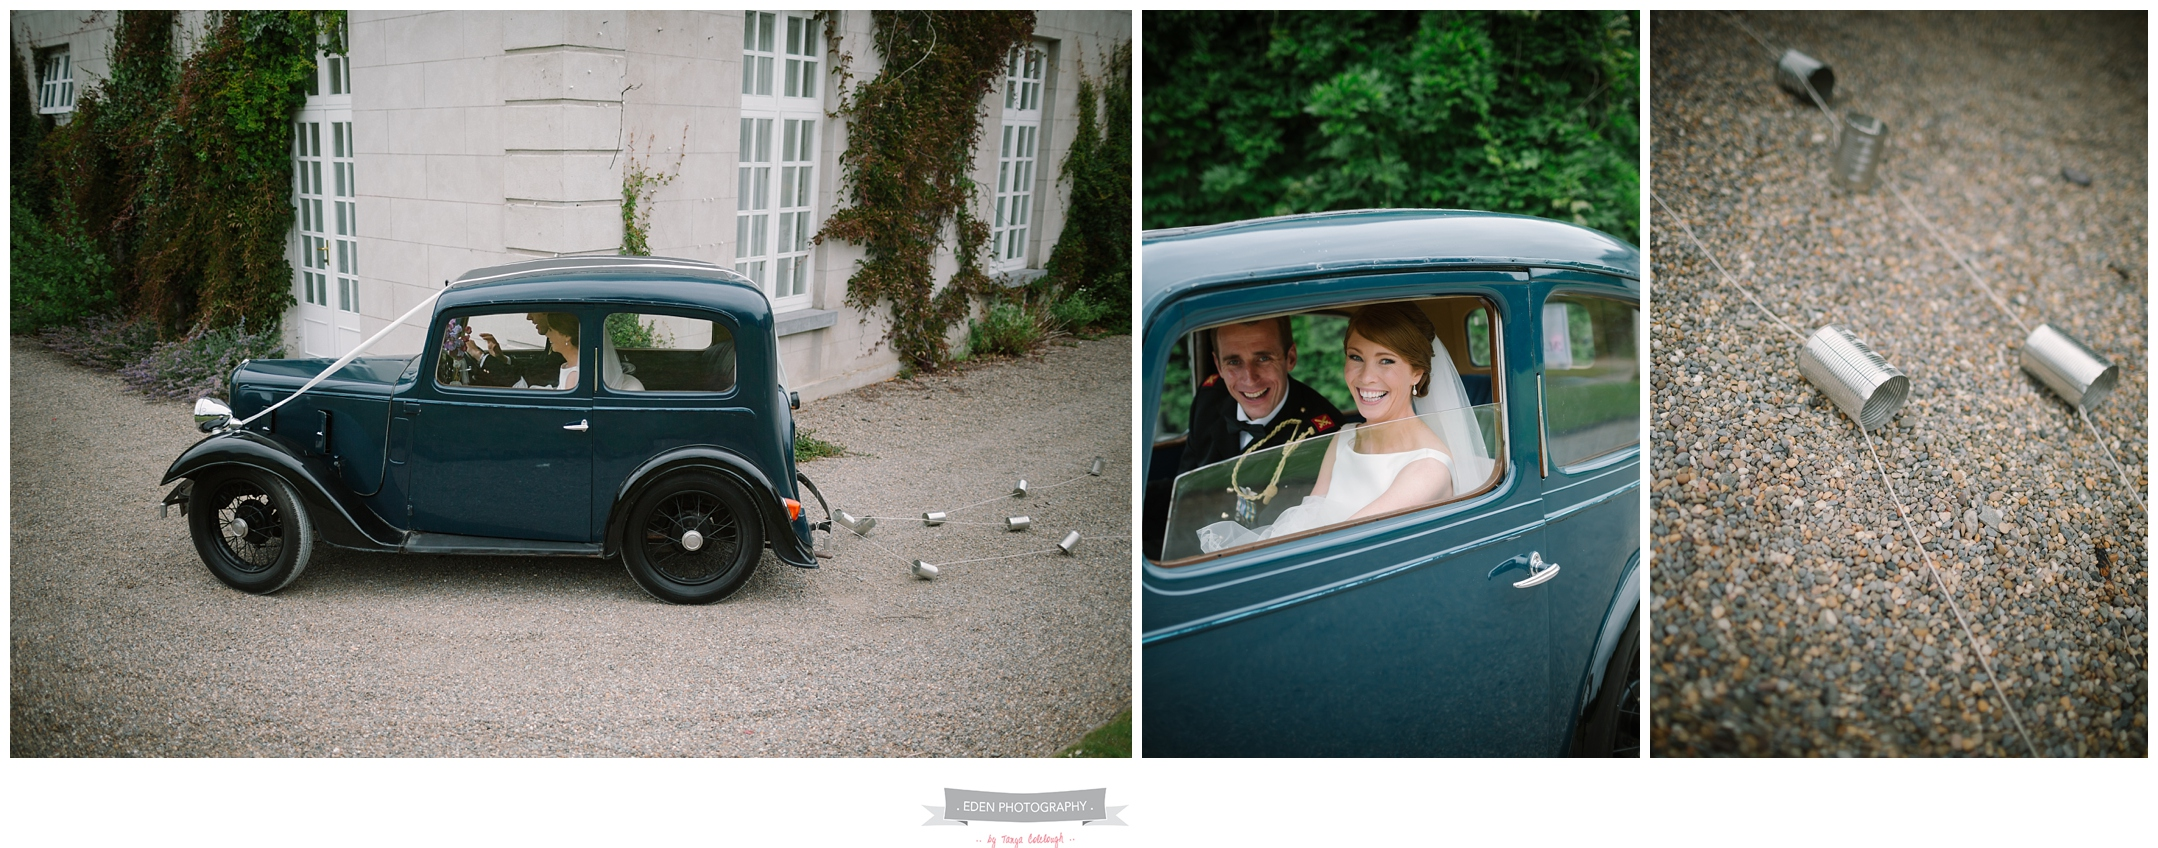 wedding photography at Hook Head Wexford